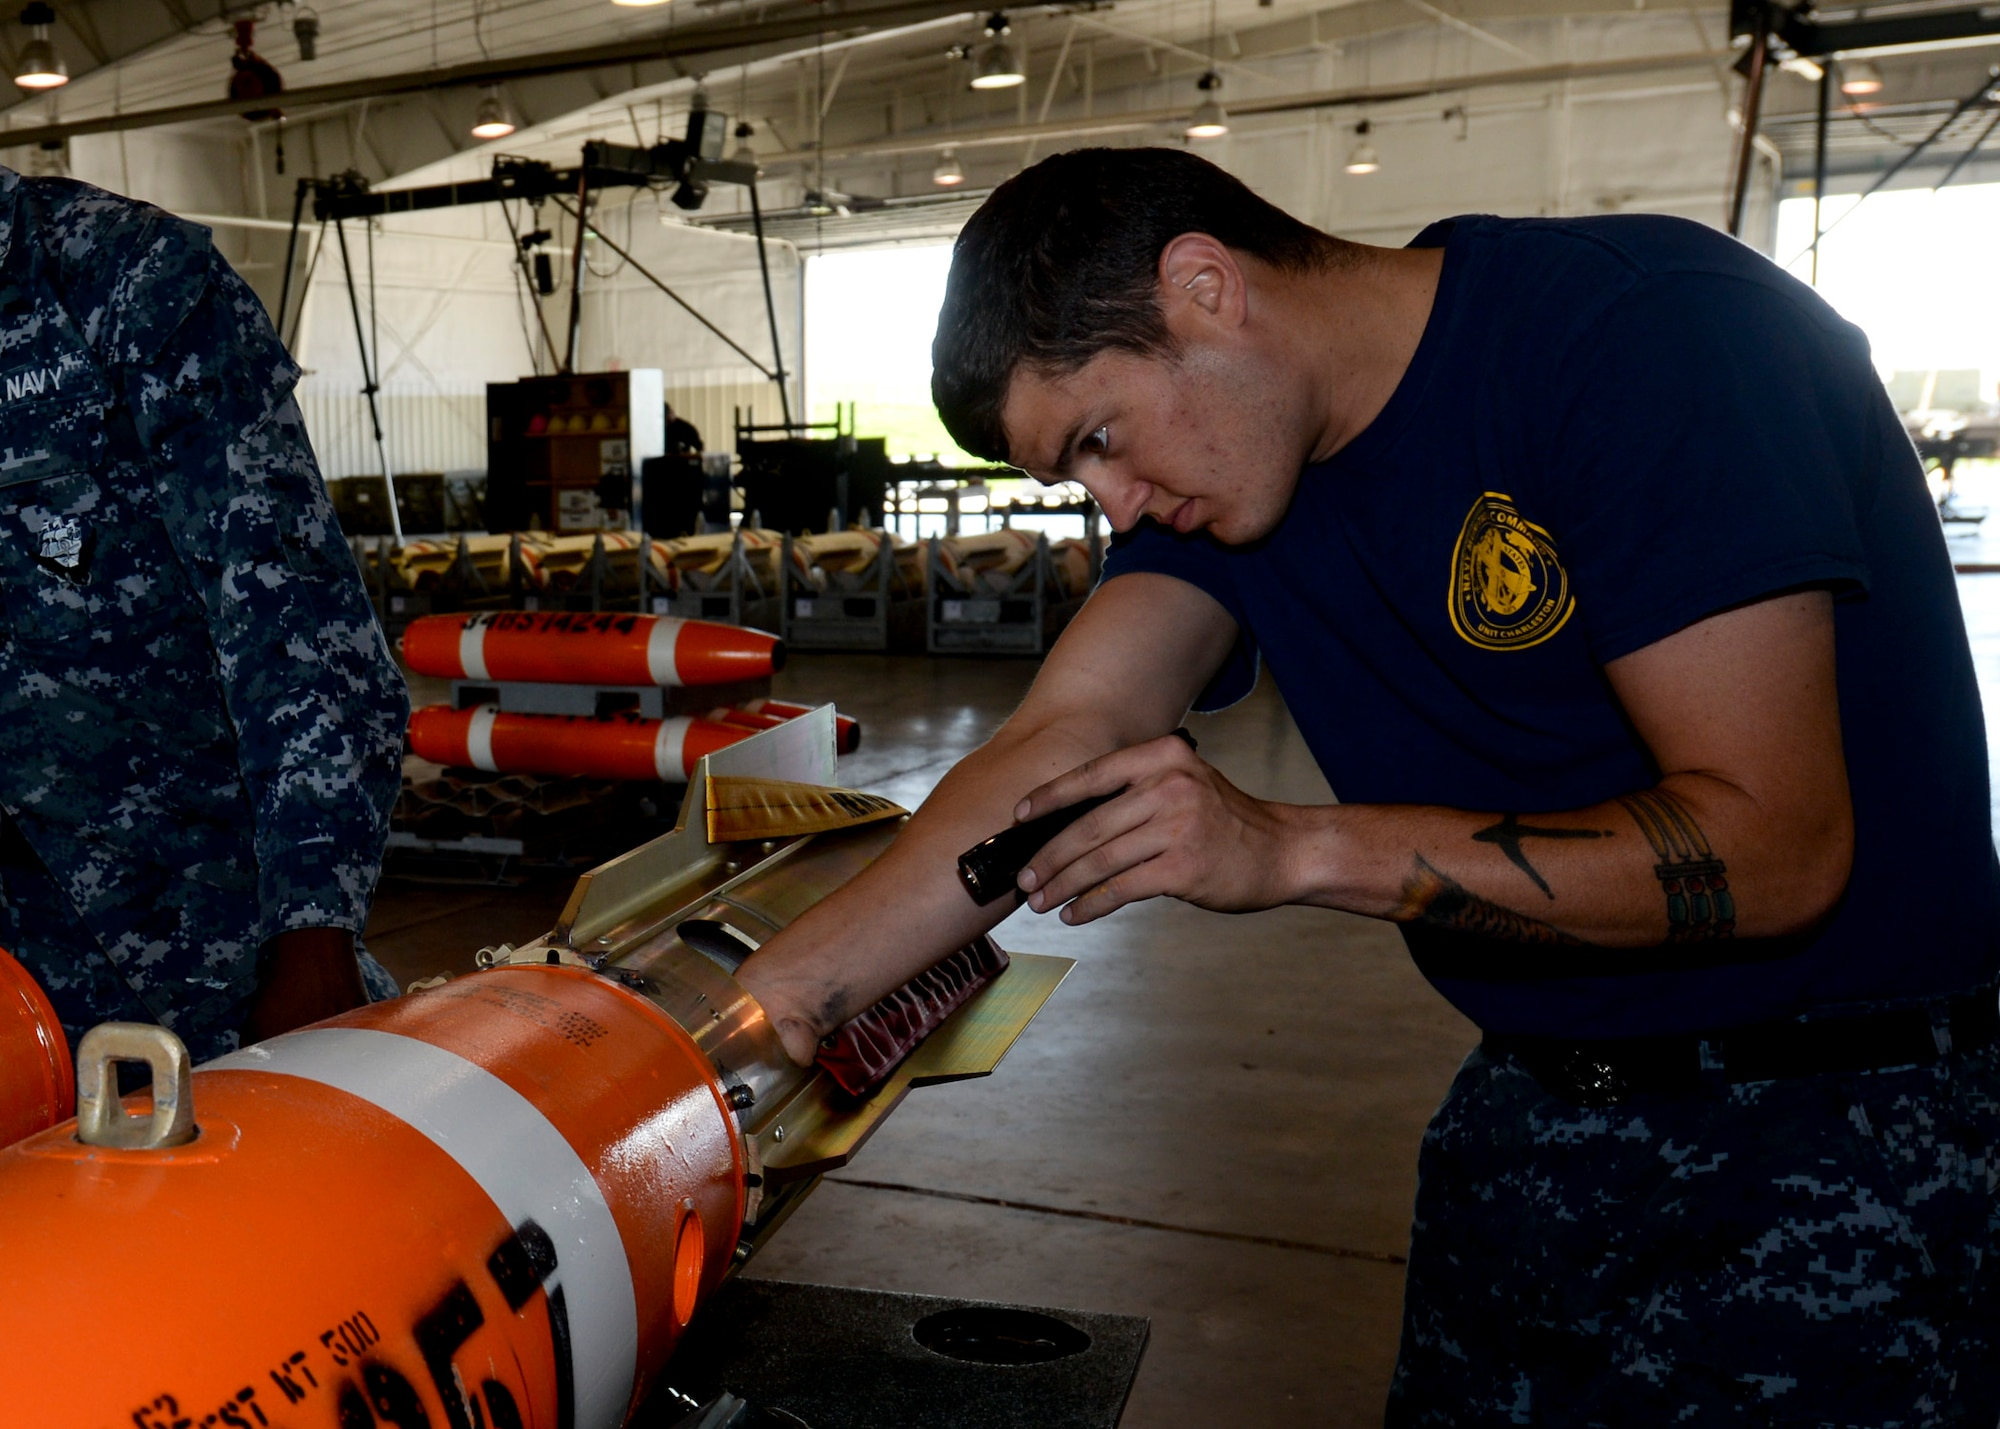 Petty Officer 2nd Class Daniel Bentley, Naval Munitions Command Charleston mineman, adjusts the fin assembly on an Mk-62 Quickstrike mine at Ellsworth Air Force Base, S.D. June 2, 2014. The B-1B Lancer pilots dropped the mines at an altitude of about 1,000 feet while moving at more than 500 kilometers an hour as part of a joint exercise with Ellsworth Airmen designed to enhance air and sea capabilities. (U.S. Air Force photo by Senior Airman Anania Tekurio)